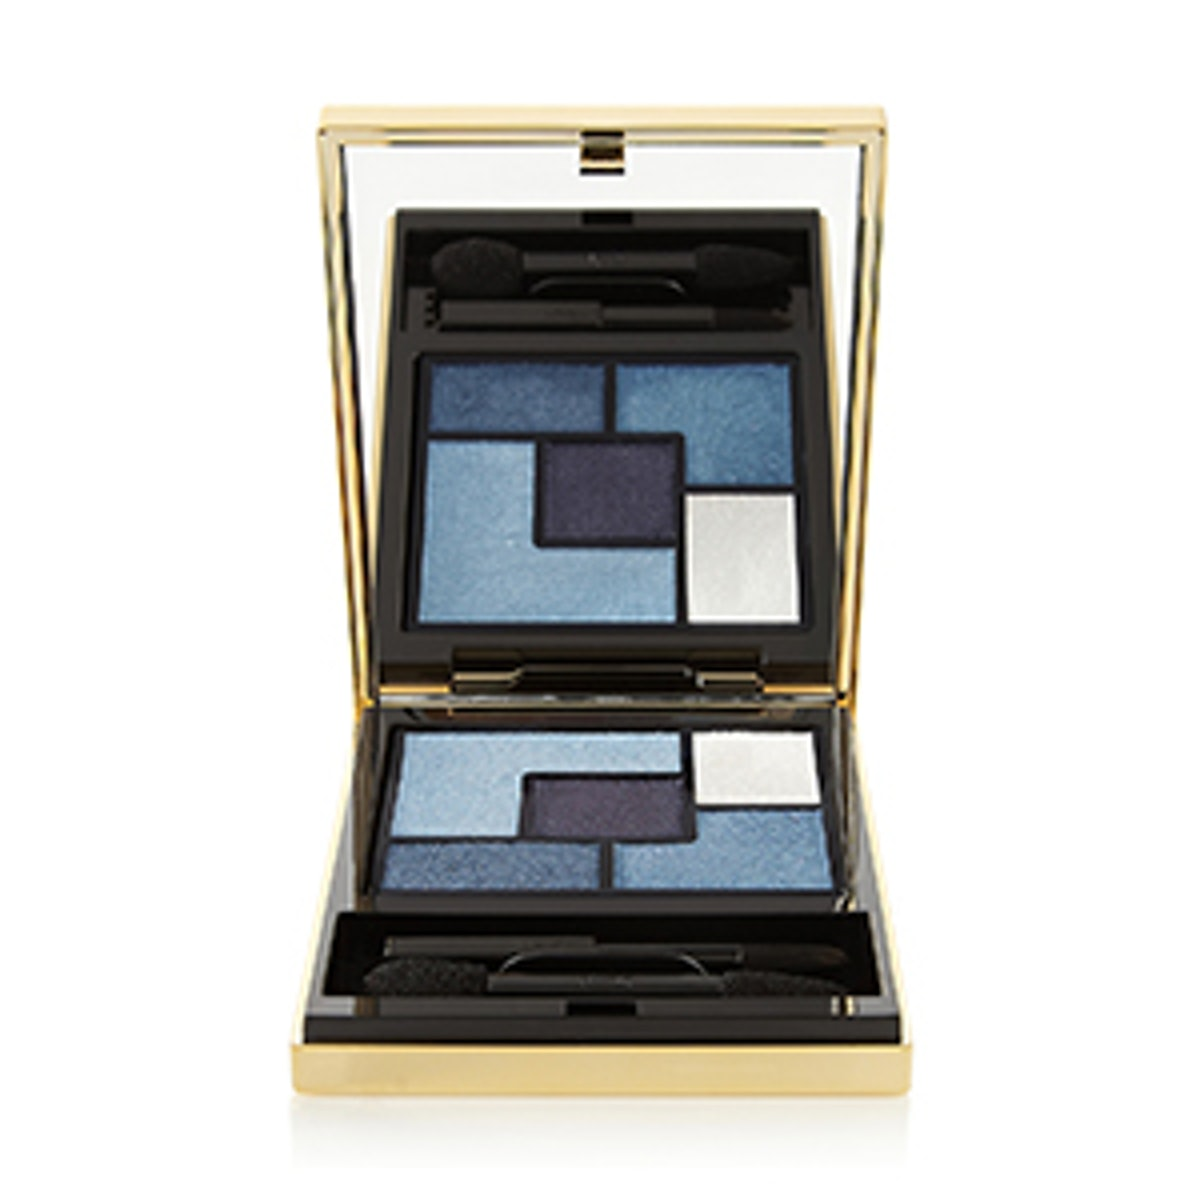 Couture Palette Eyeshadow in 6 Rive Gauche